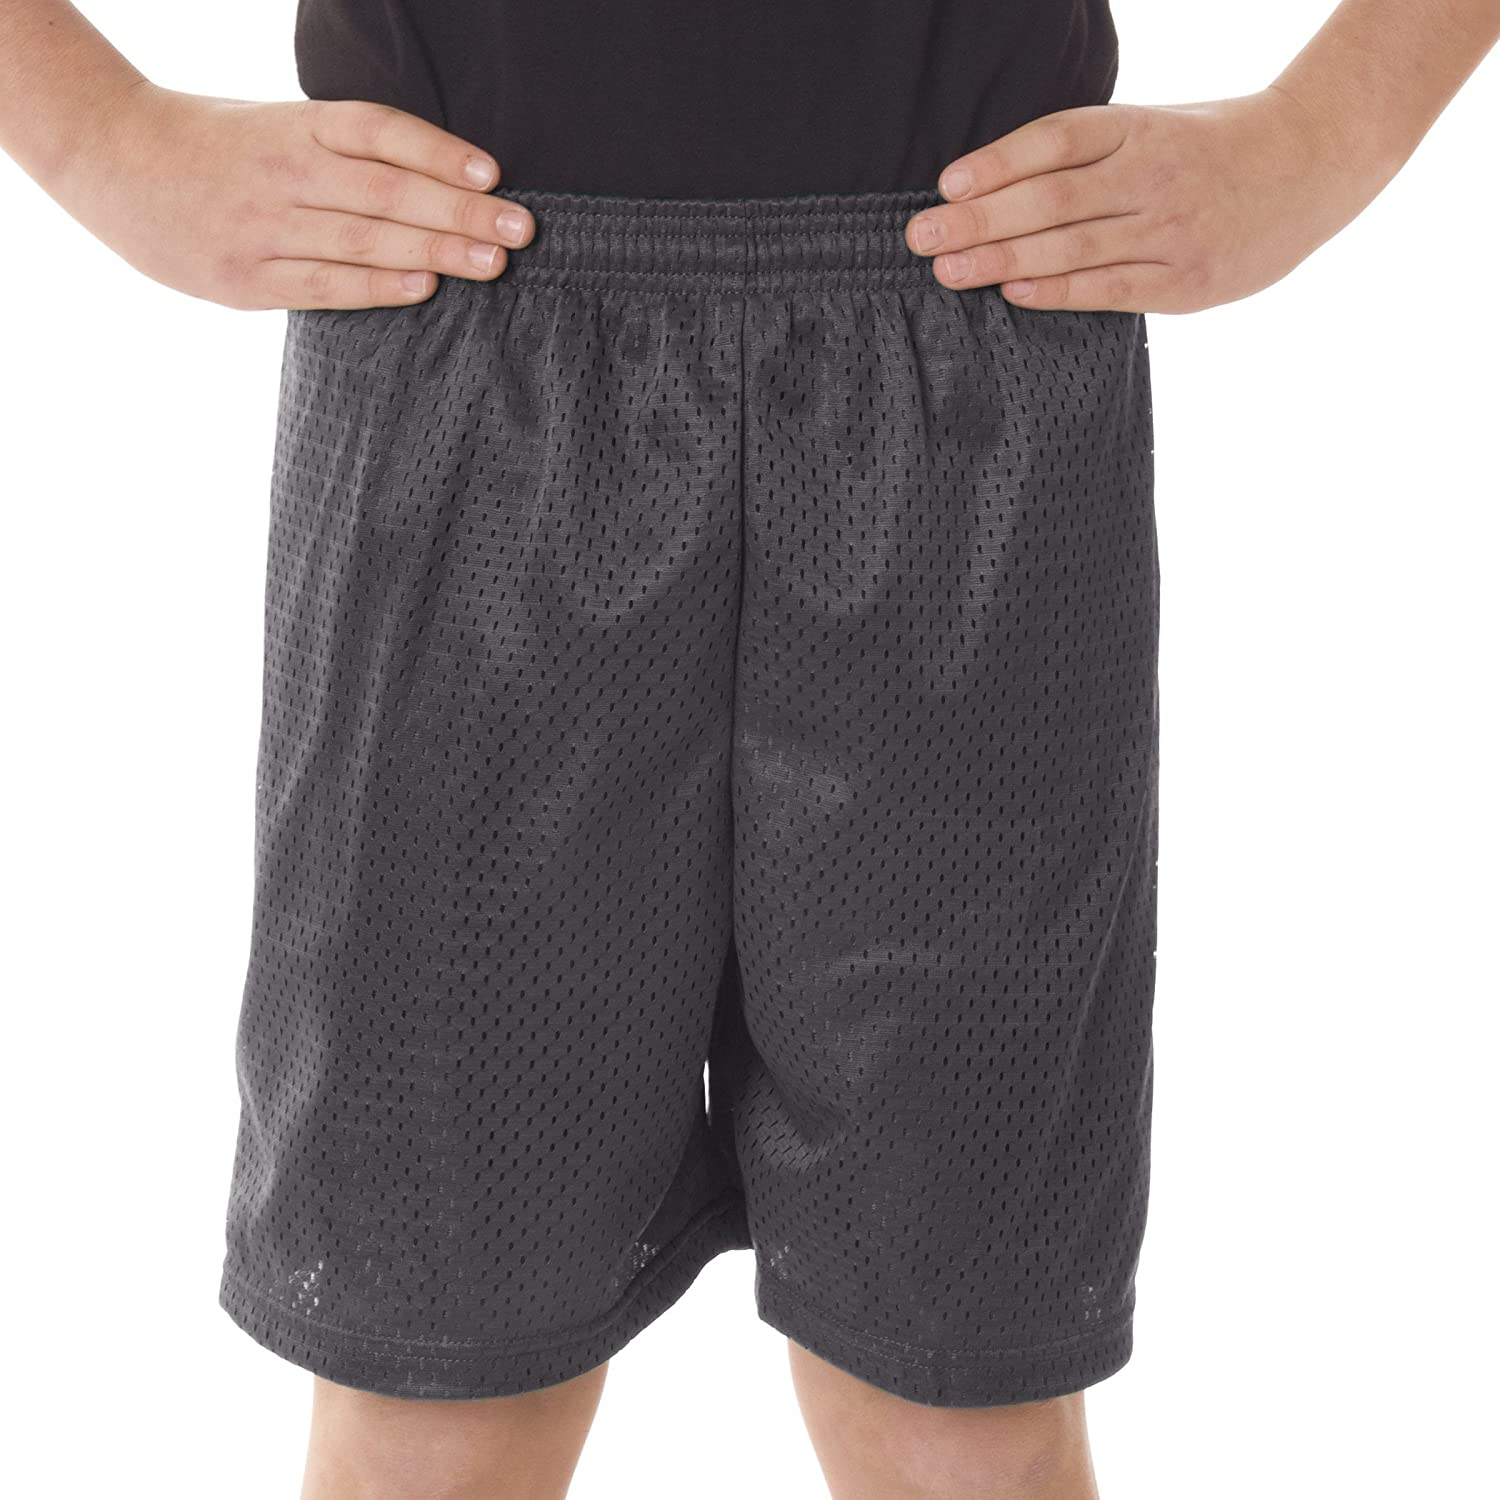 Badger 2207 Youth 6 Mesh Shorts for cheap